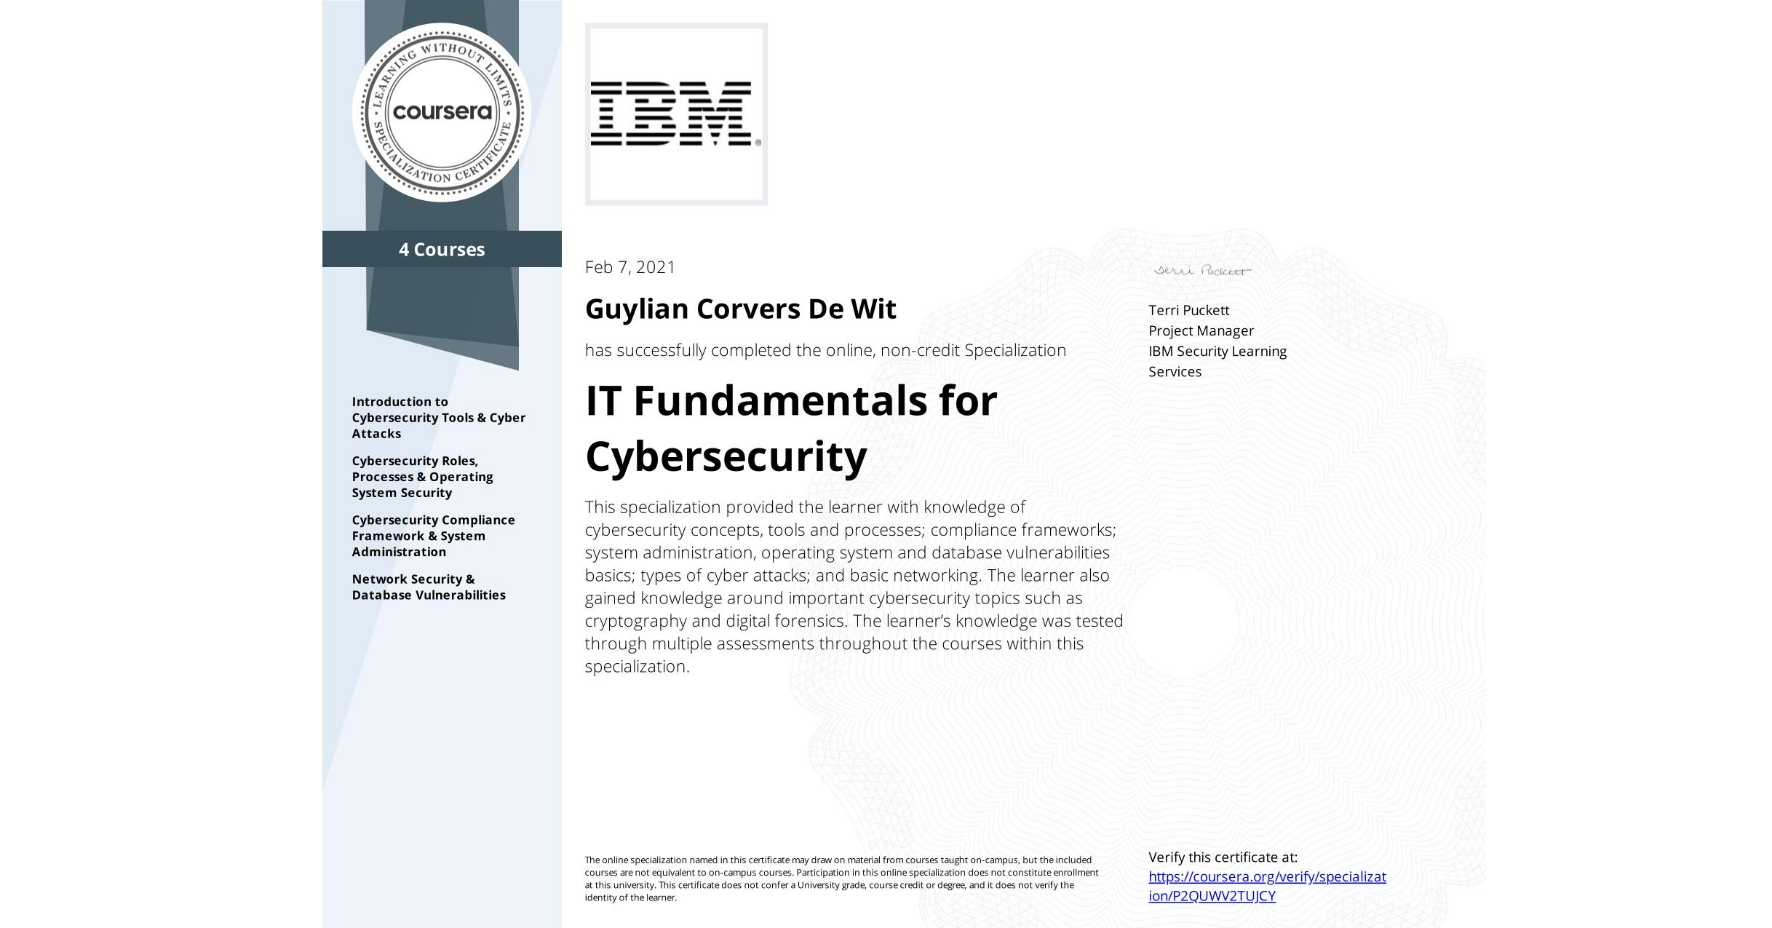 View certificate for Guylian Corvers De Wit, IT Fundamentals for Cybersecurity, offered through Coursera. This specialization provided the learner with knowledge of cybersecurity concepts, tools and processes; compliance frameworks; system administration, operating system and database vulnerabilities basics; types of cyber attacks; and basic networking.  The learner also gained knowledge around important cybersecurity topics such as cryptography and digital forensics.  The learner's knowledge was tested through multiple assessments throughout the courses within this specialization.